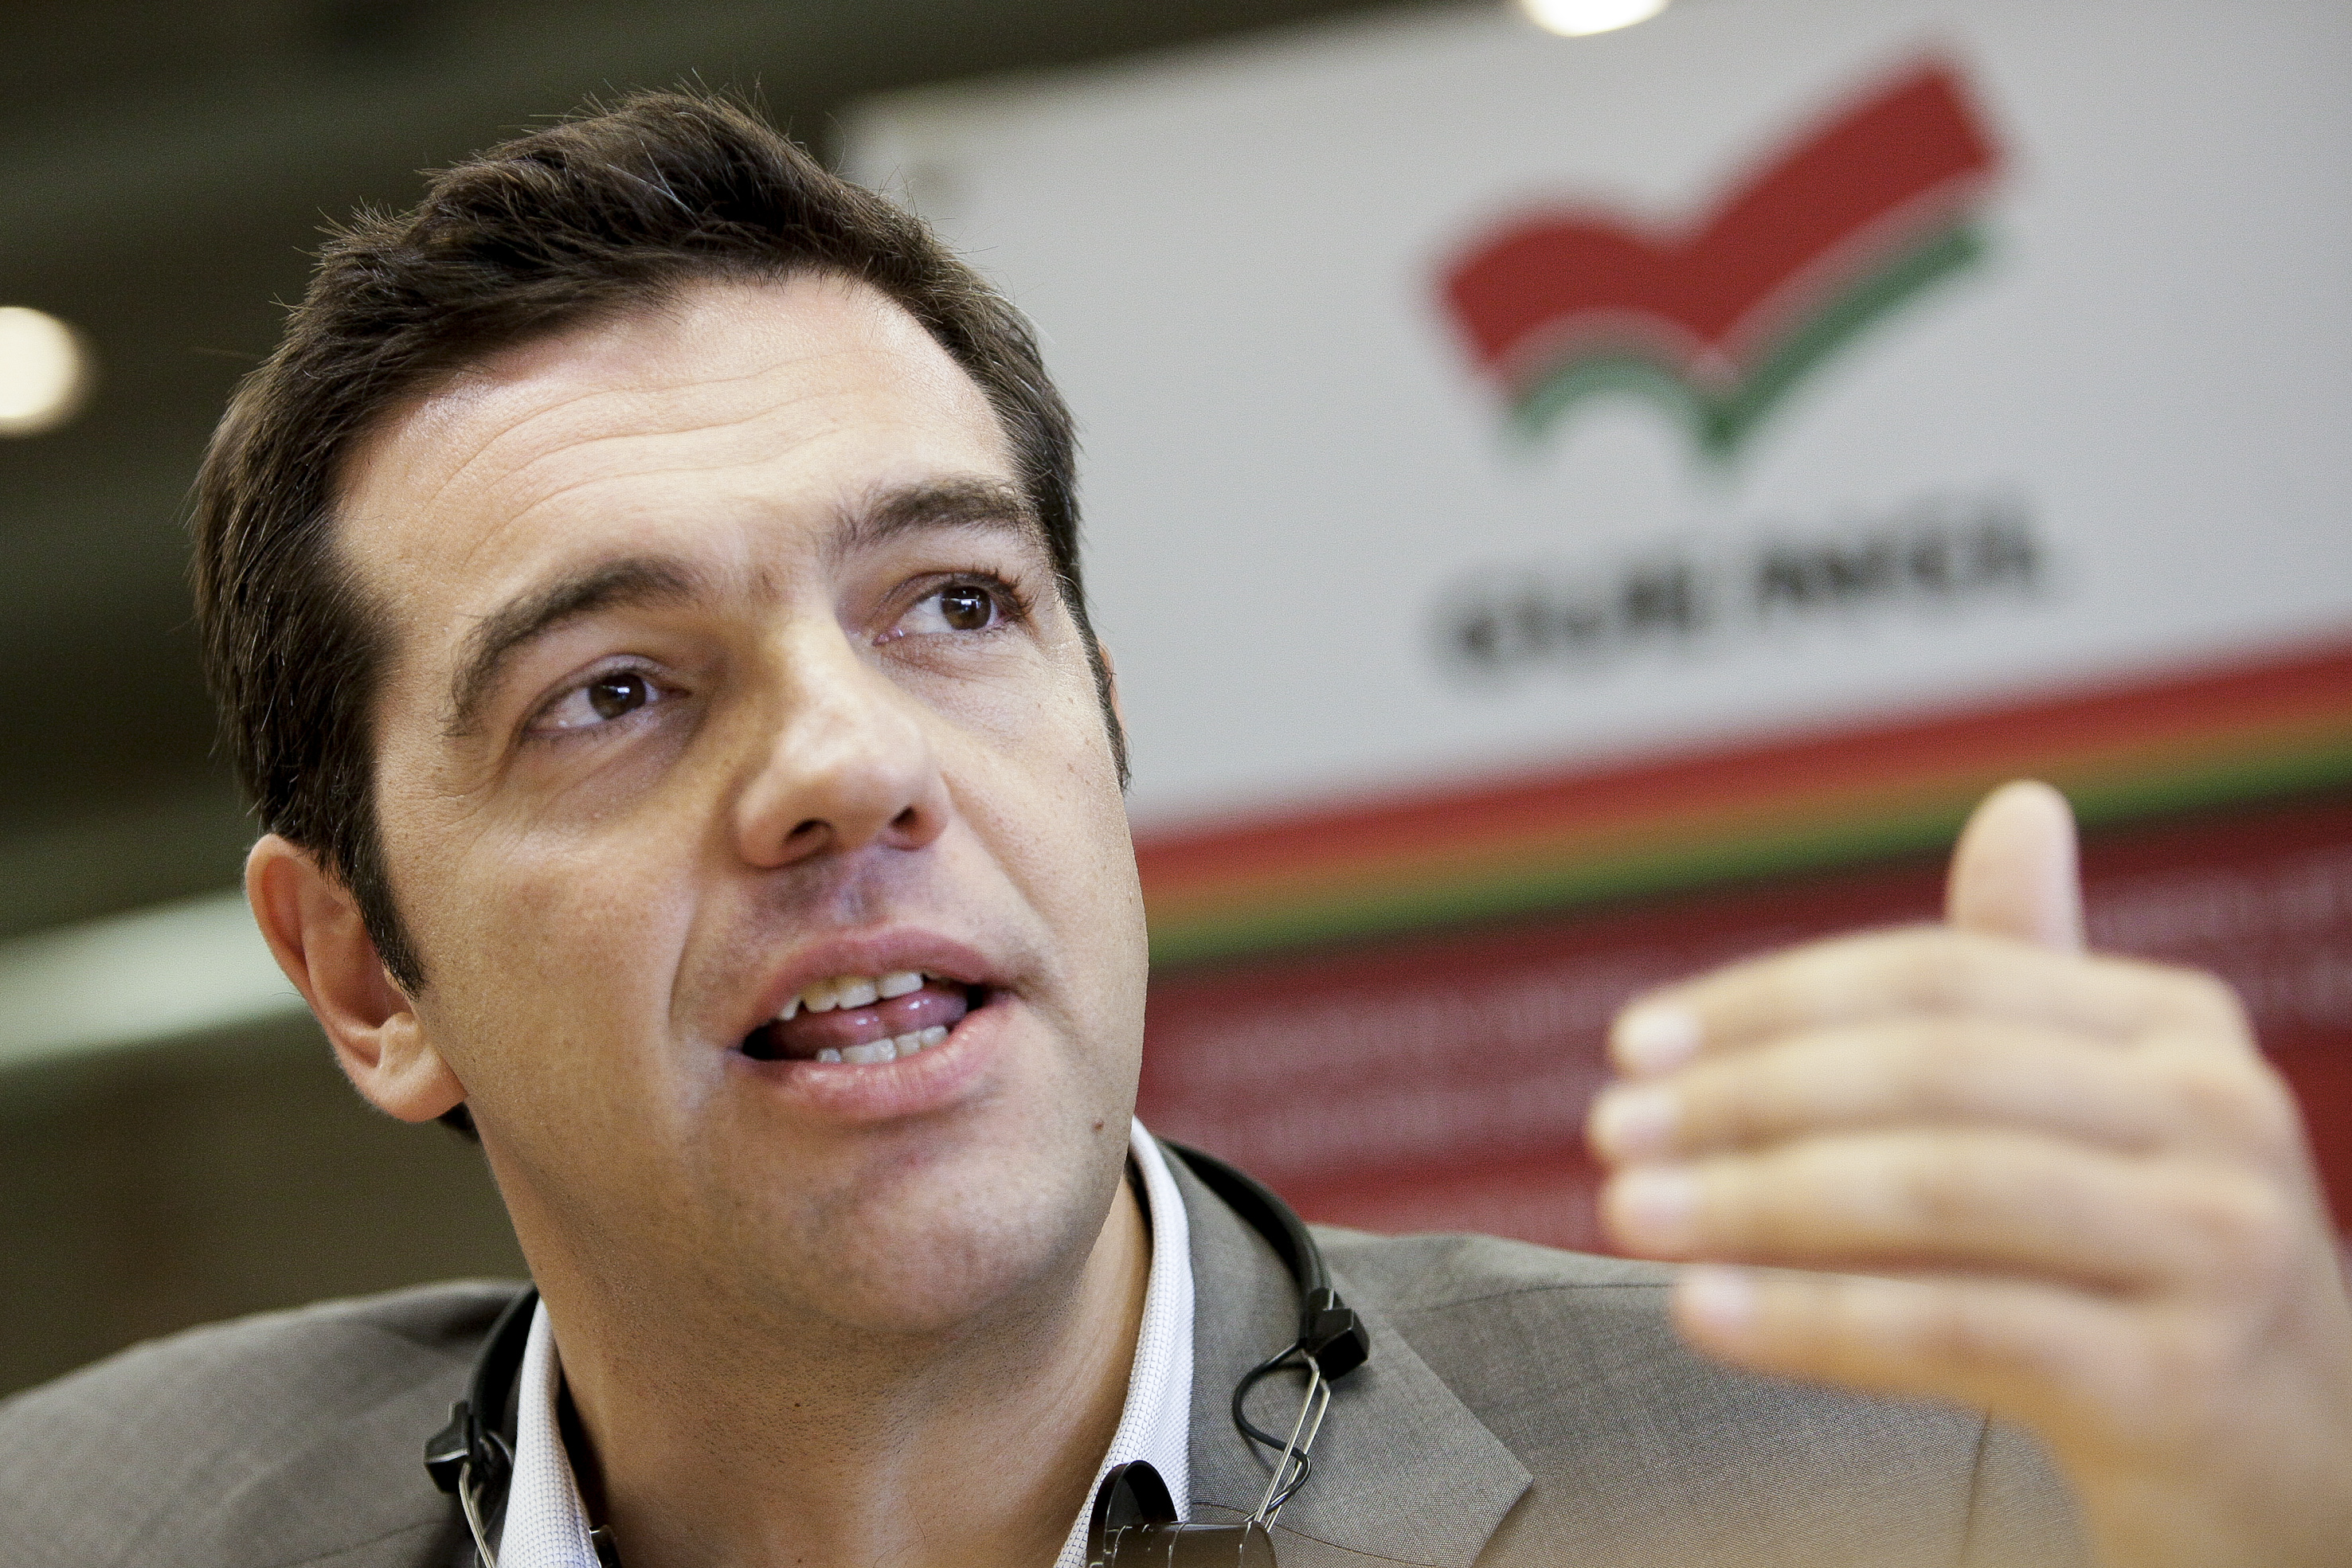 Alexis Tsipras, the leader of Syriza, has encouraged Greeks to vote against the austerity conditions